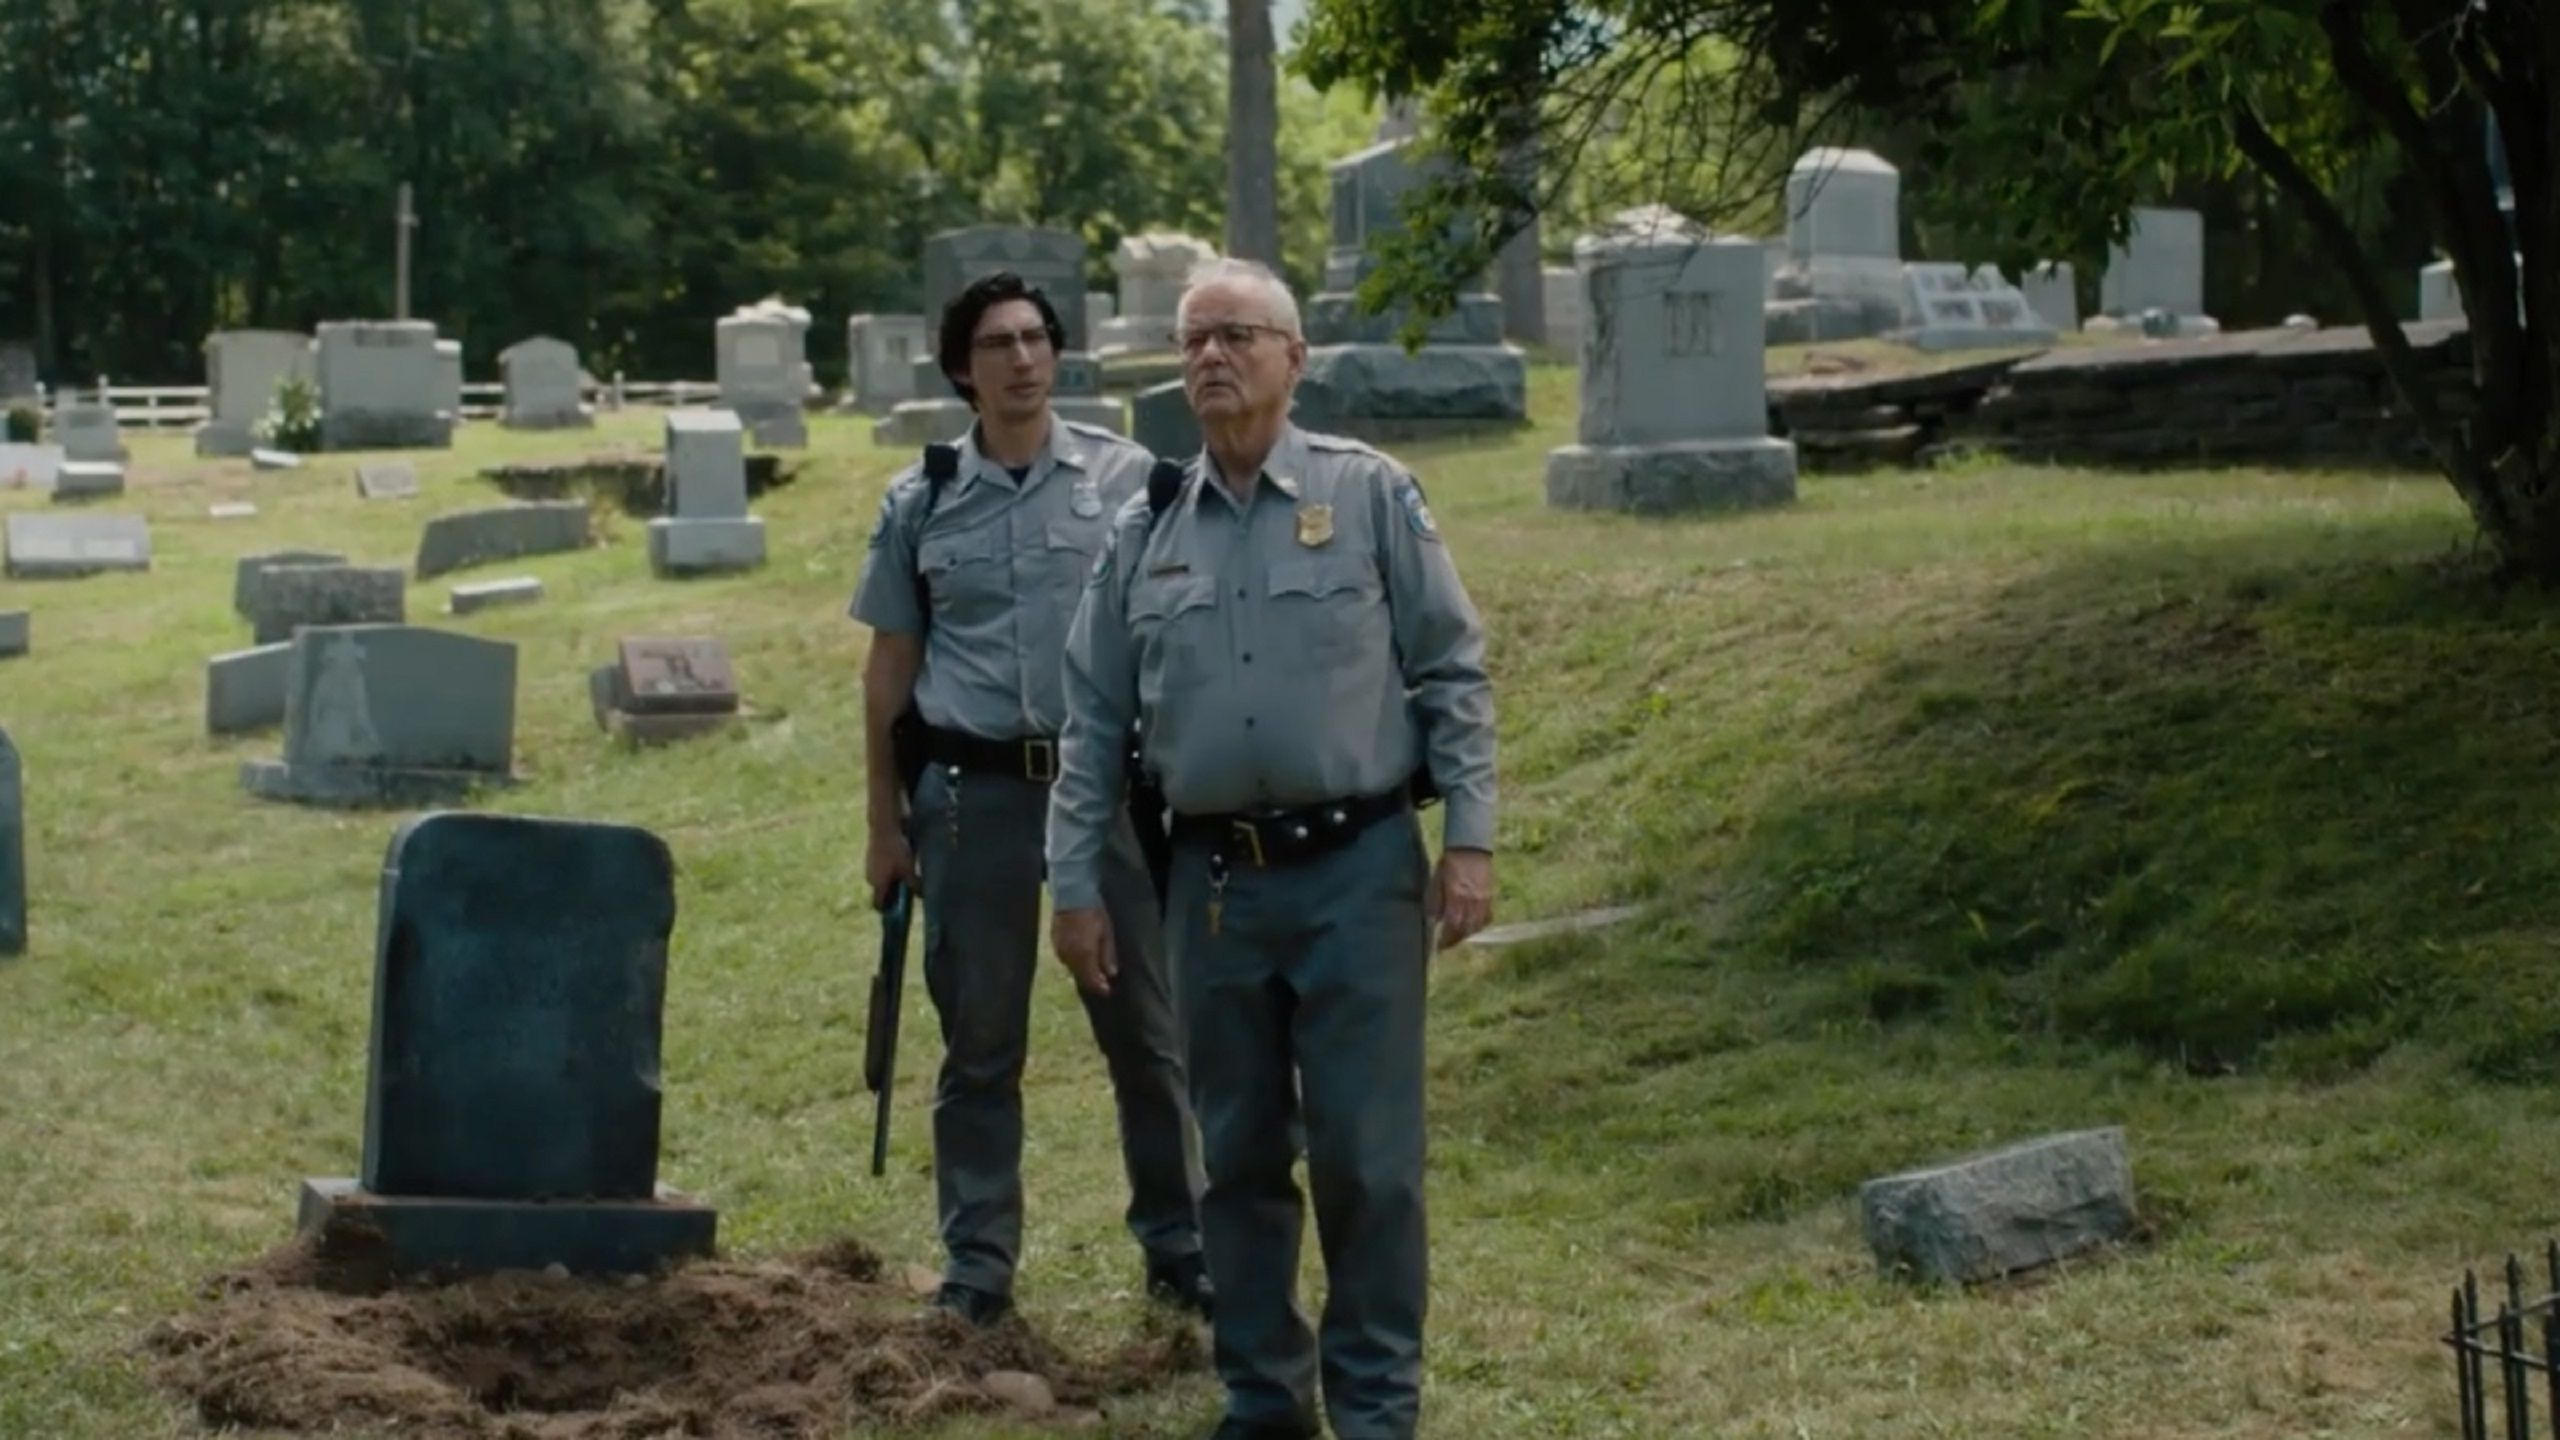 The Dead don't Die 2019 scene Cemetery - Bill Murray, Adam Driver